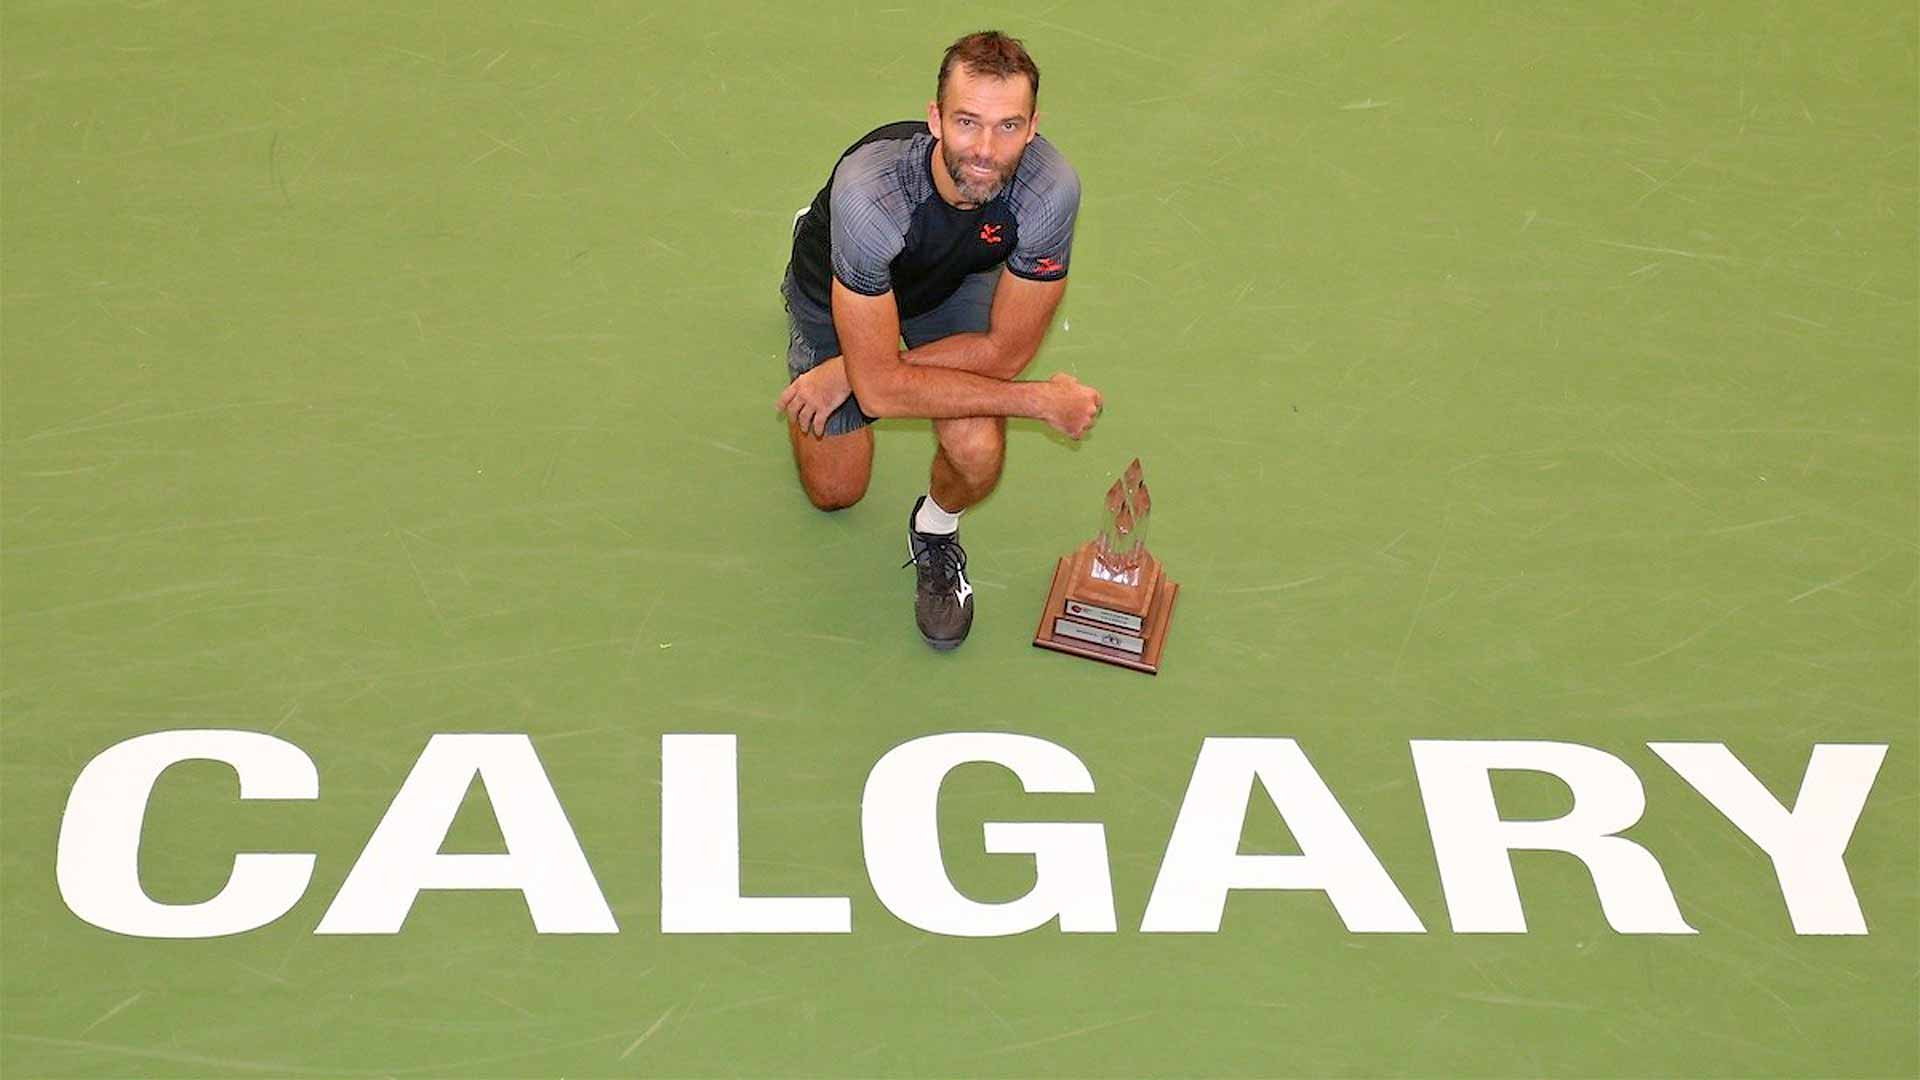 Ivo Karlovic wins a Challenger in Calgary in 2018